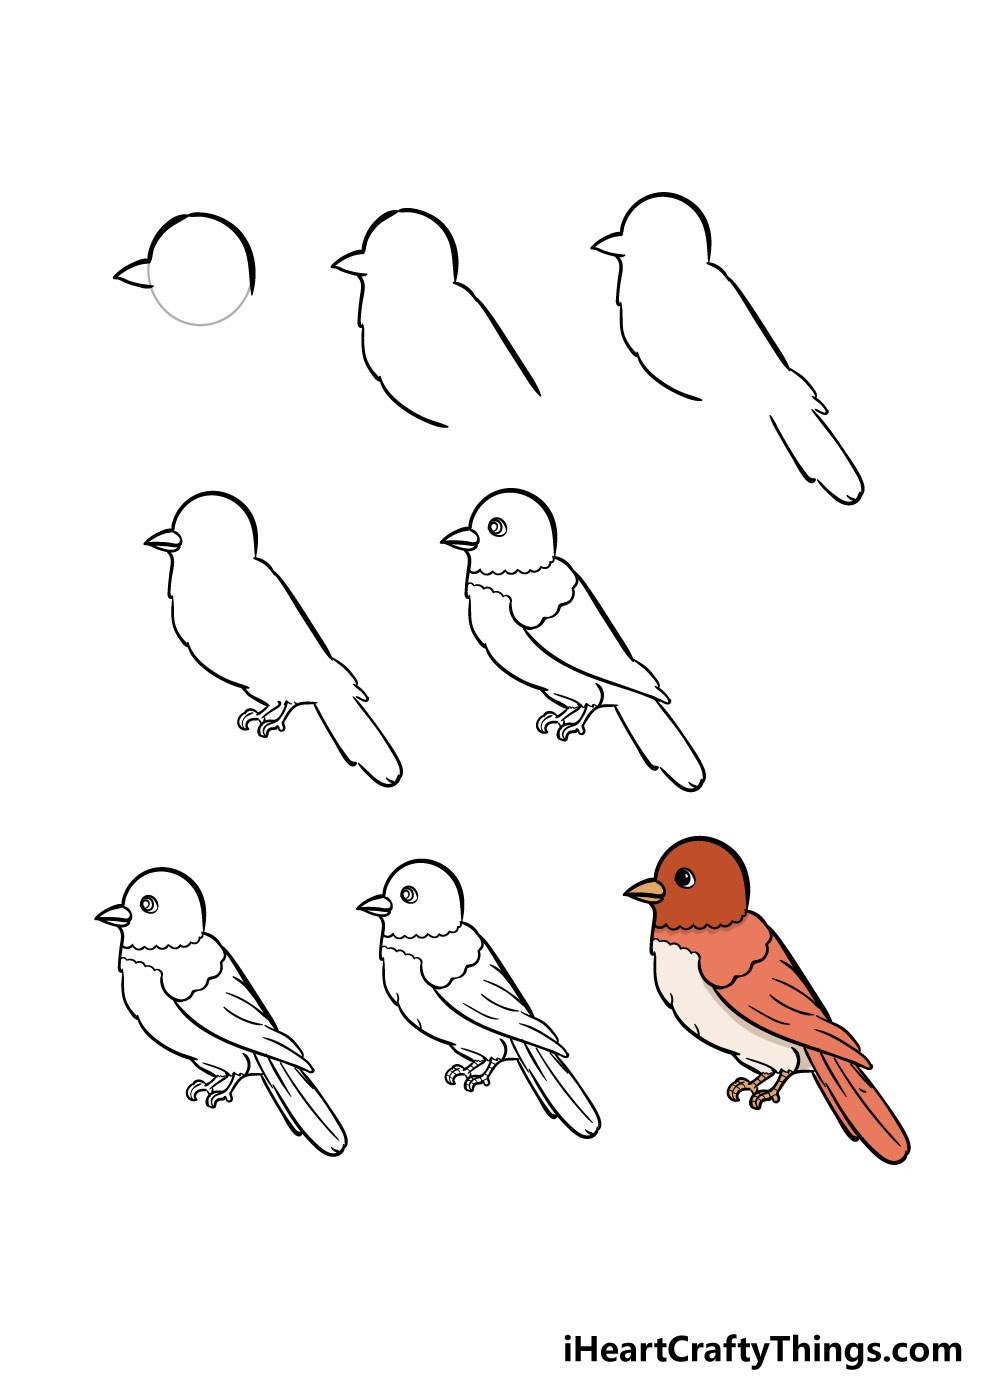 how to draw bird in 8 steps